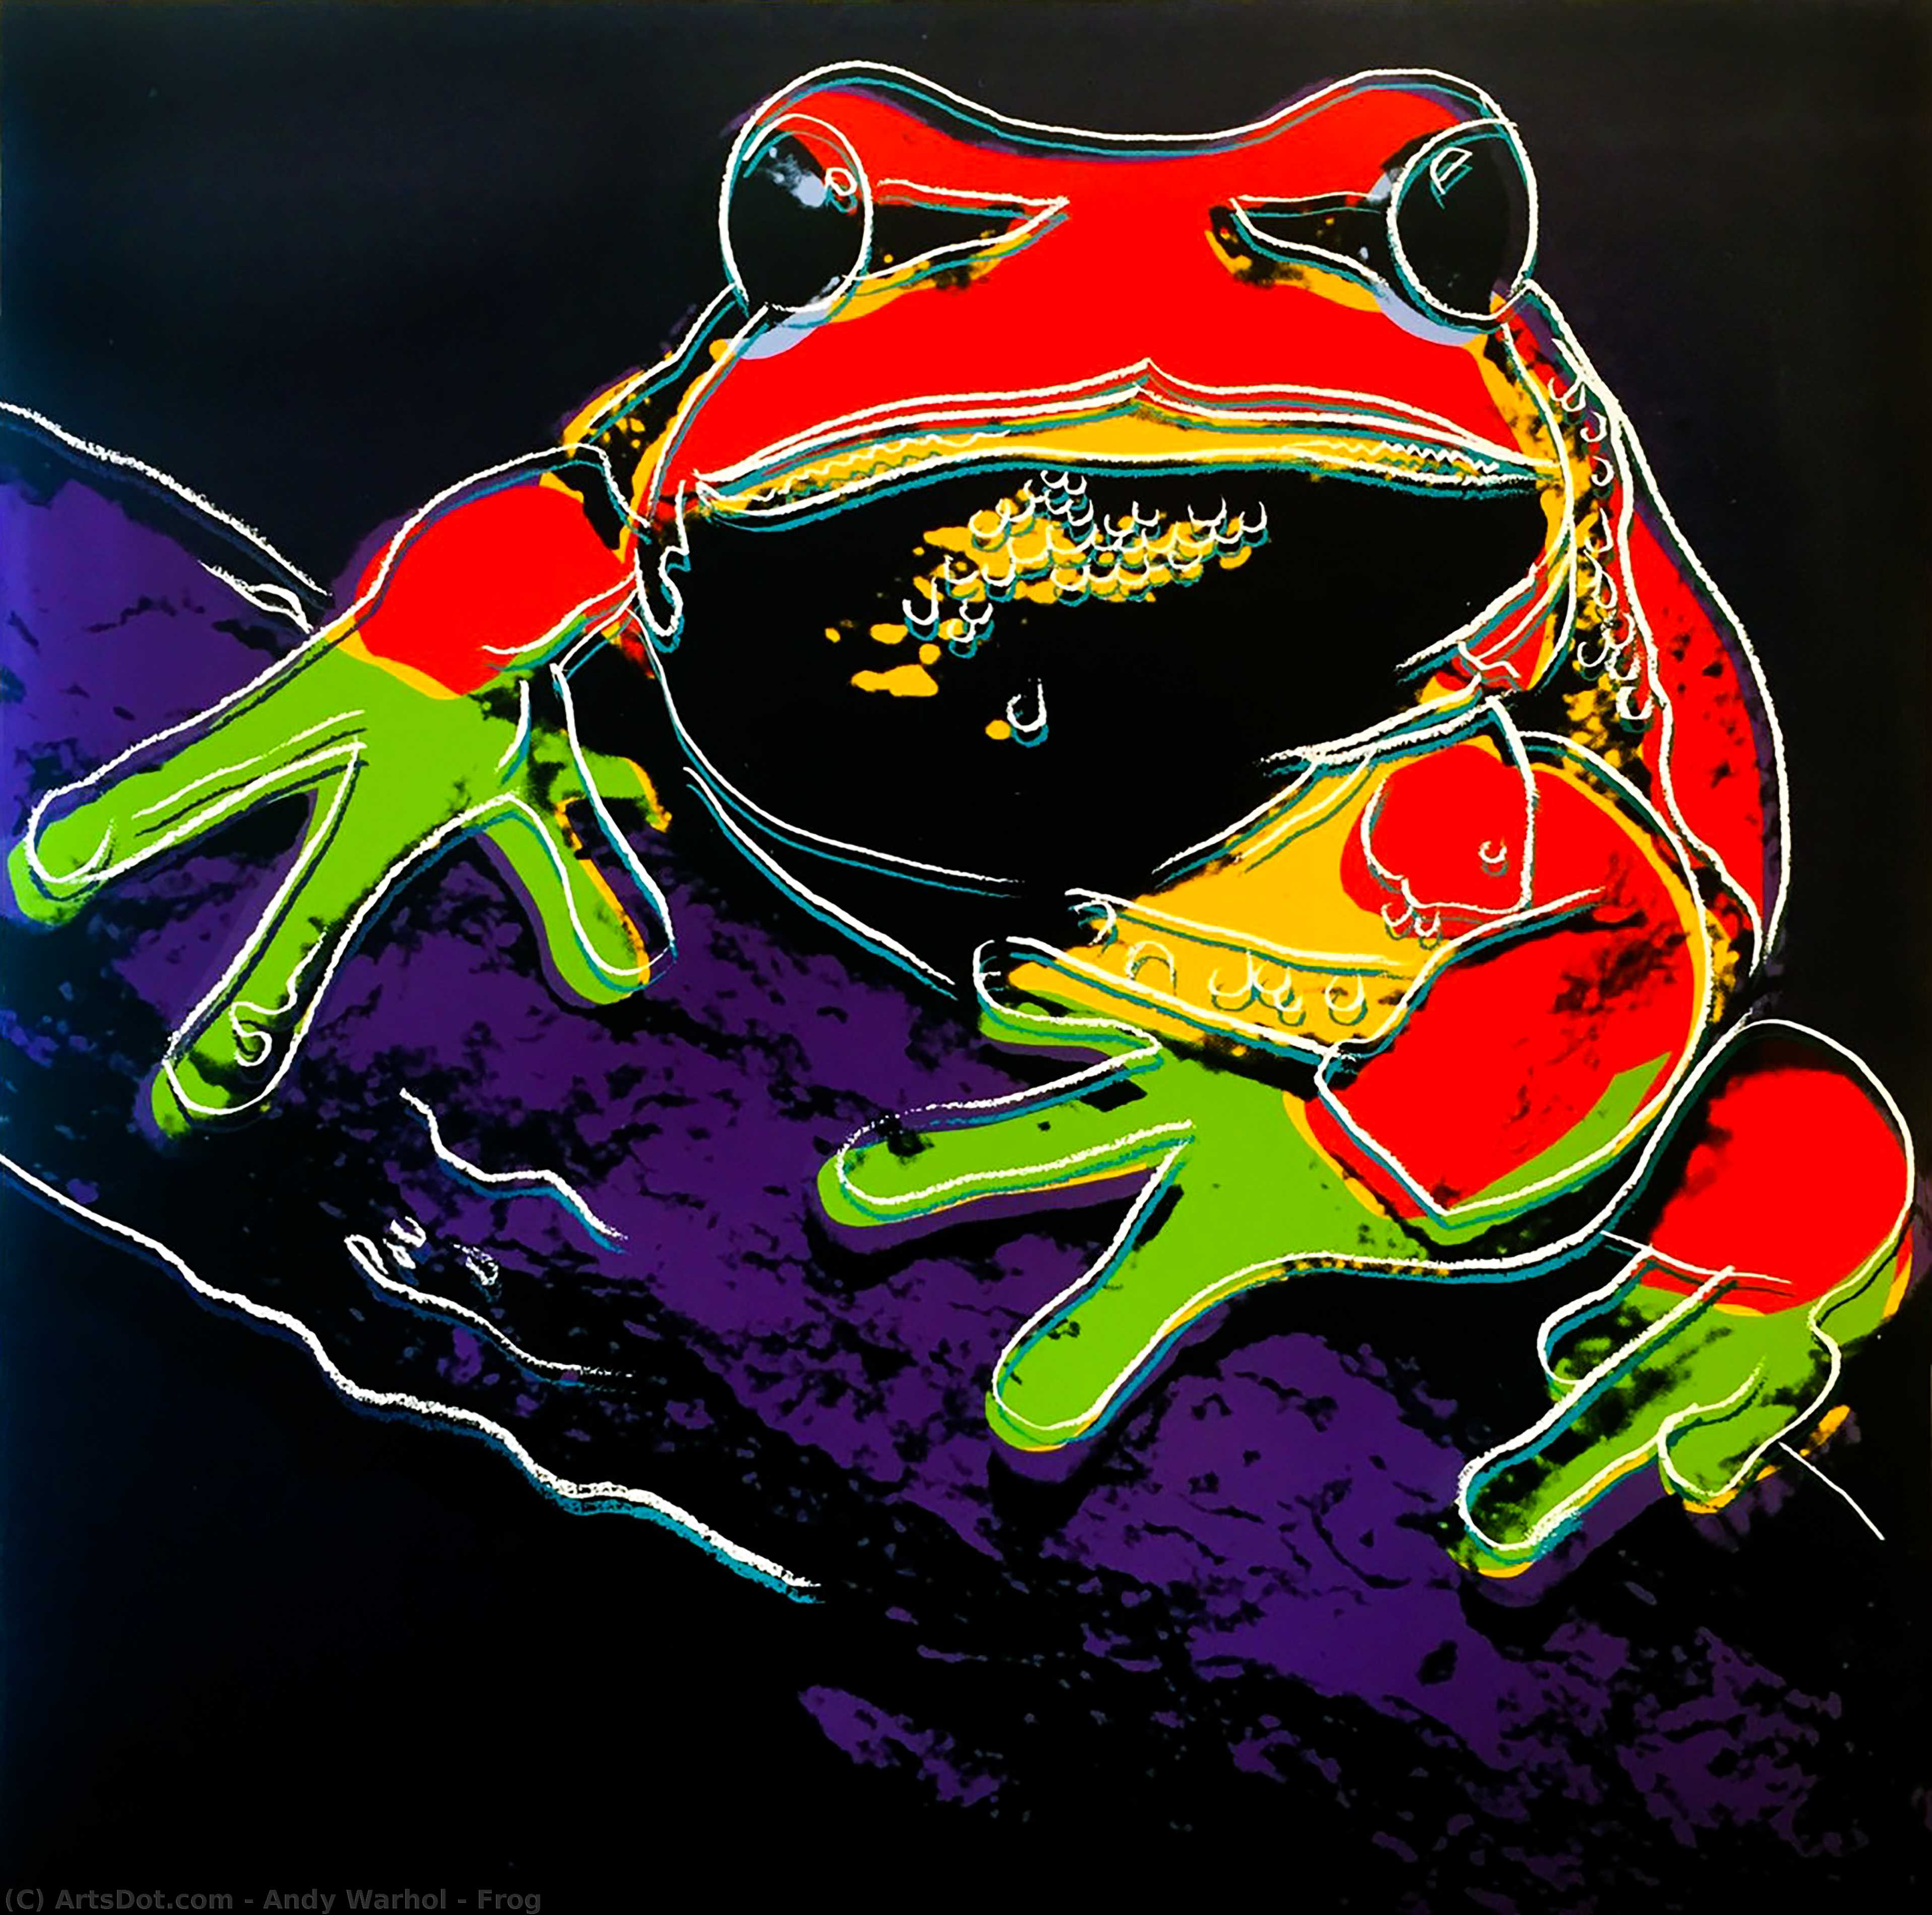 Wikioo.org - The Encyclopedia of Fine Arts - Painting, Artwork by Andy Warhol - Frog